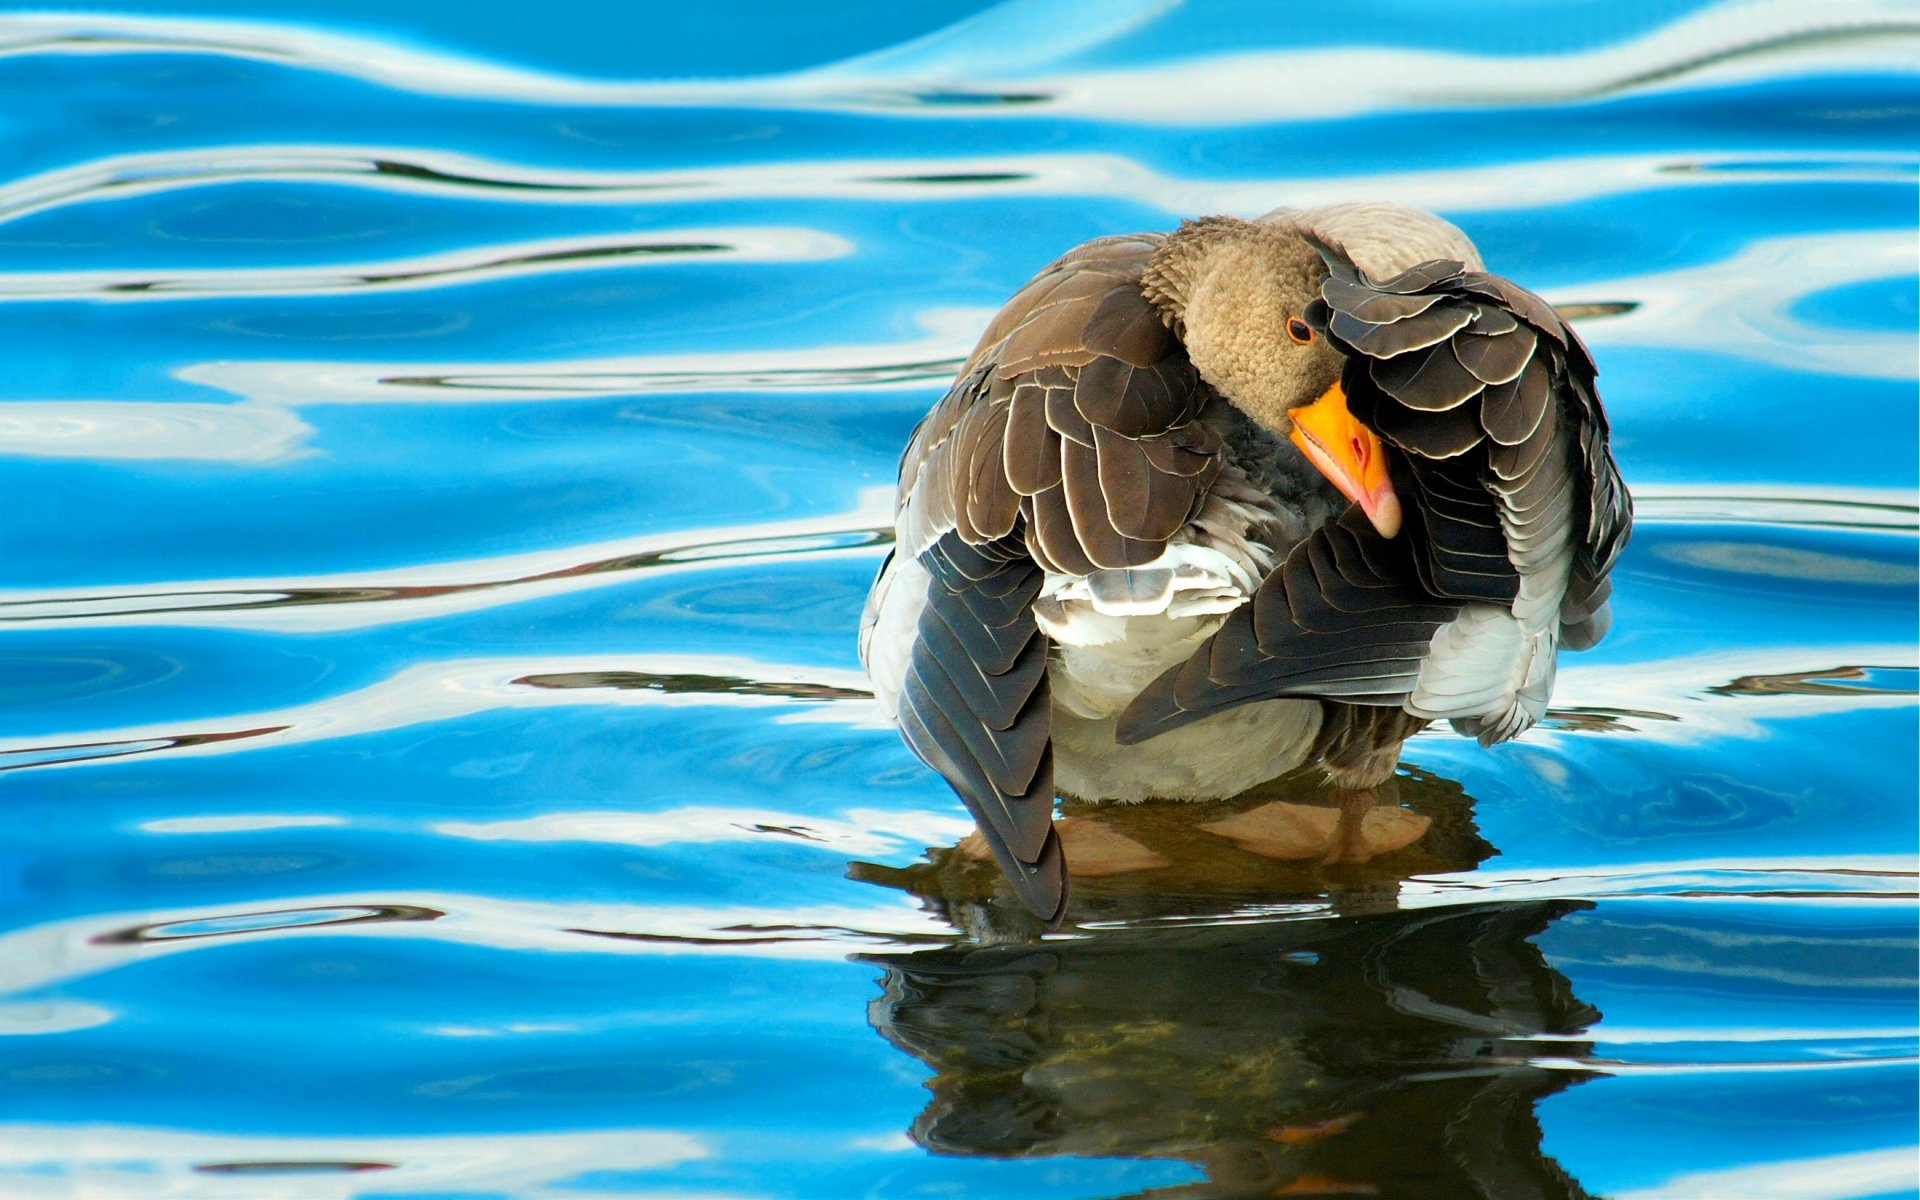 Animal - Duck  Goose Bird Wave Water Blue Reflection Wallpaper